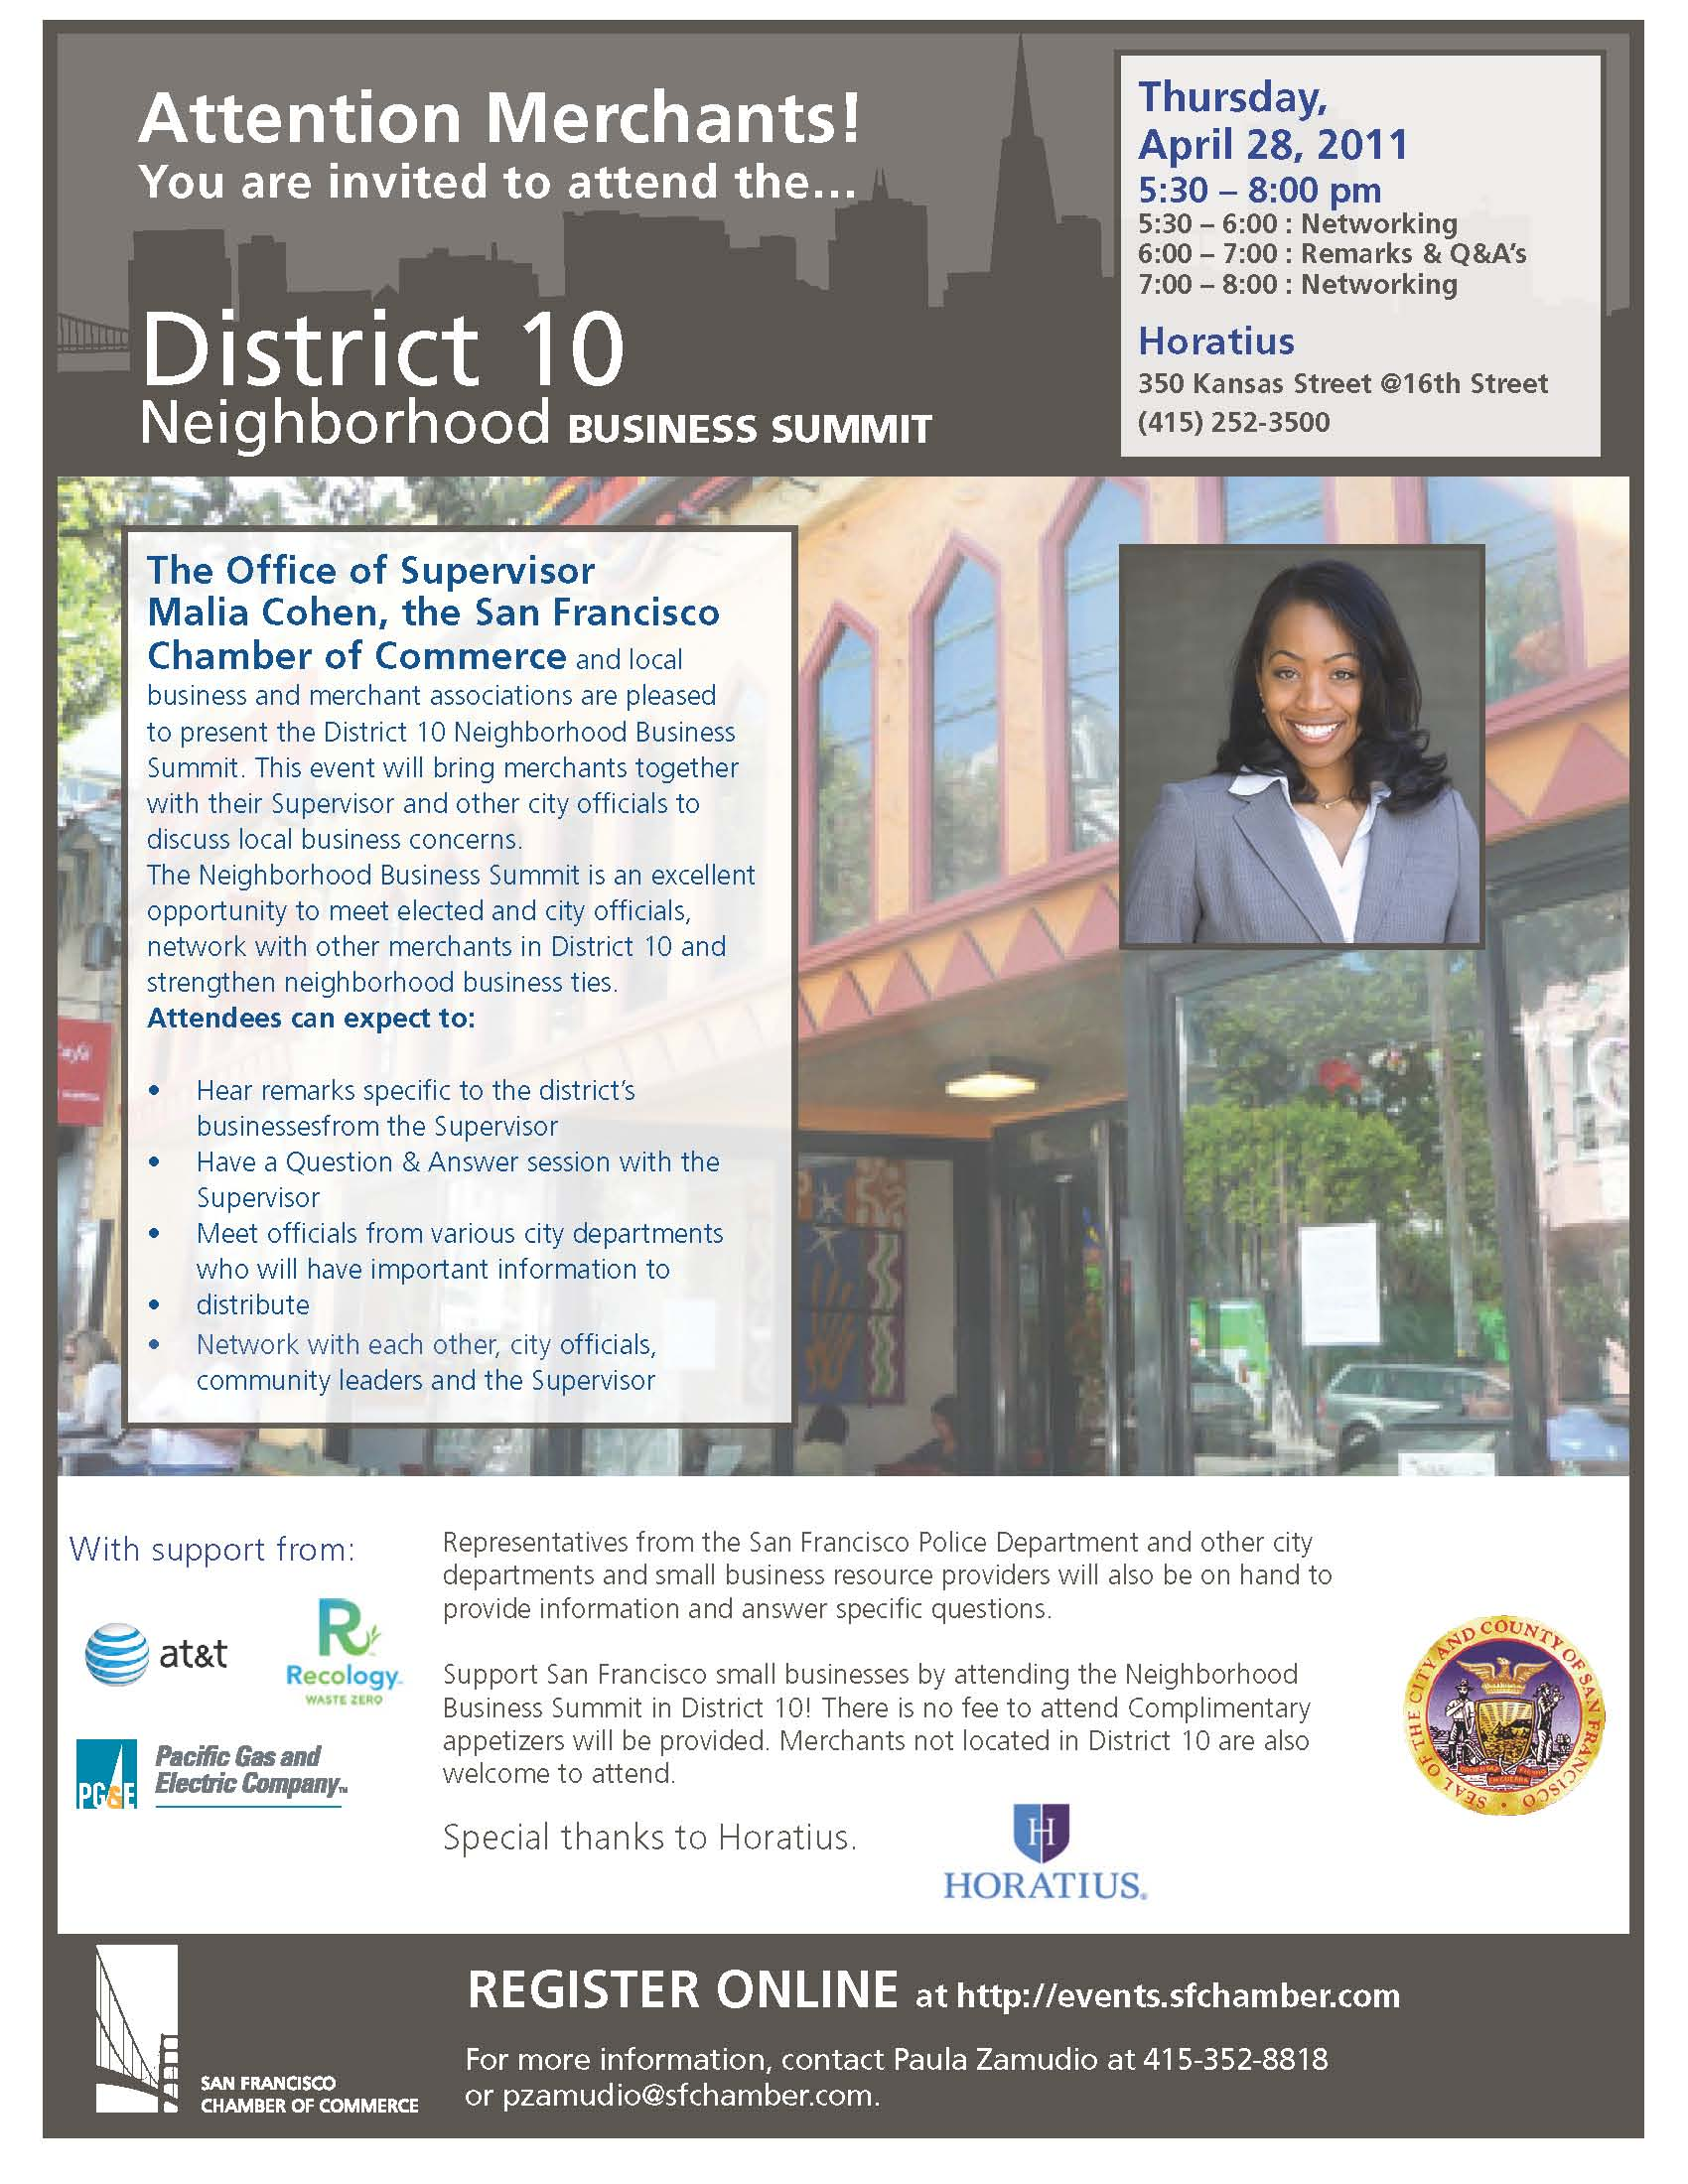 District 10 Neighborhood Business Summit